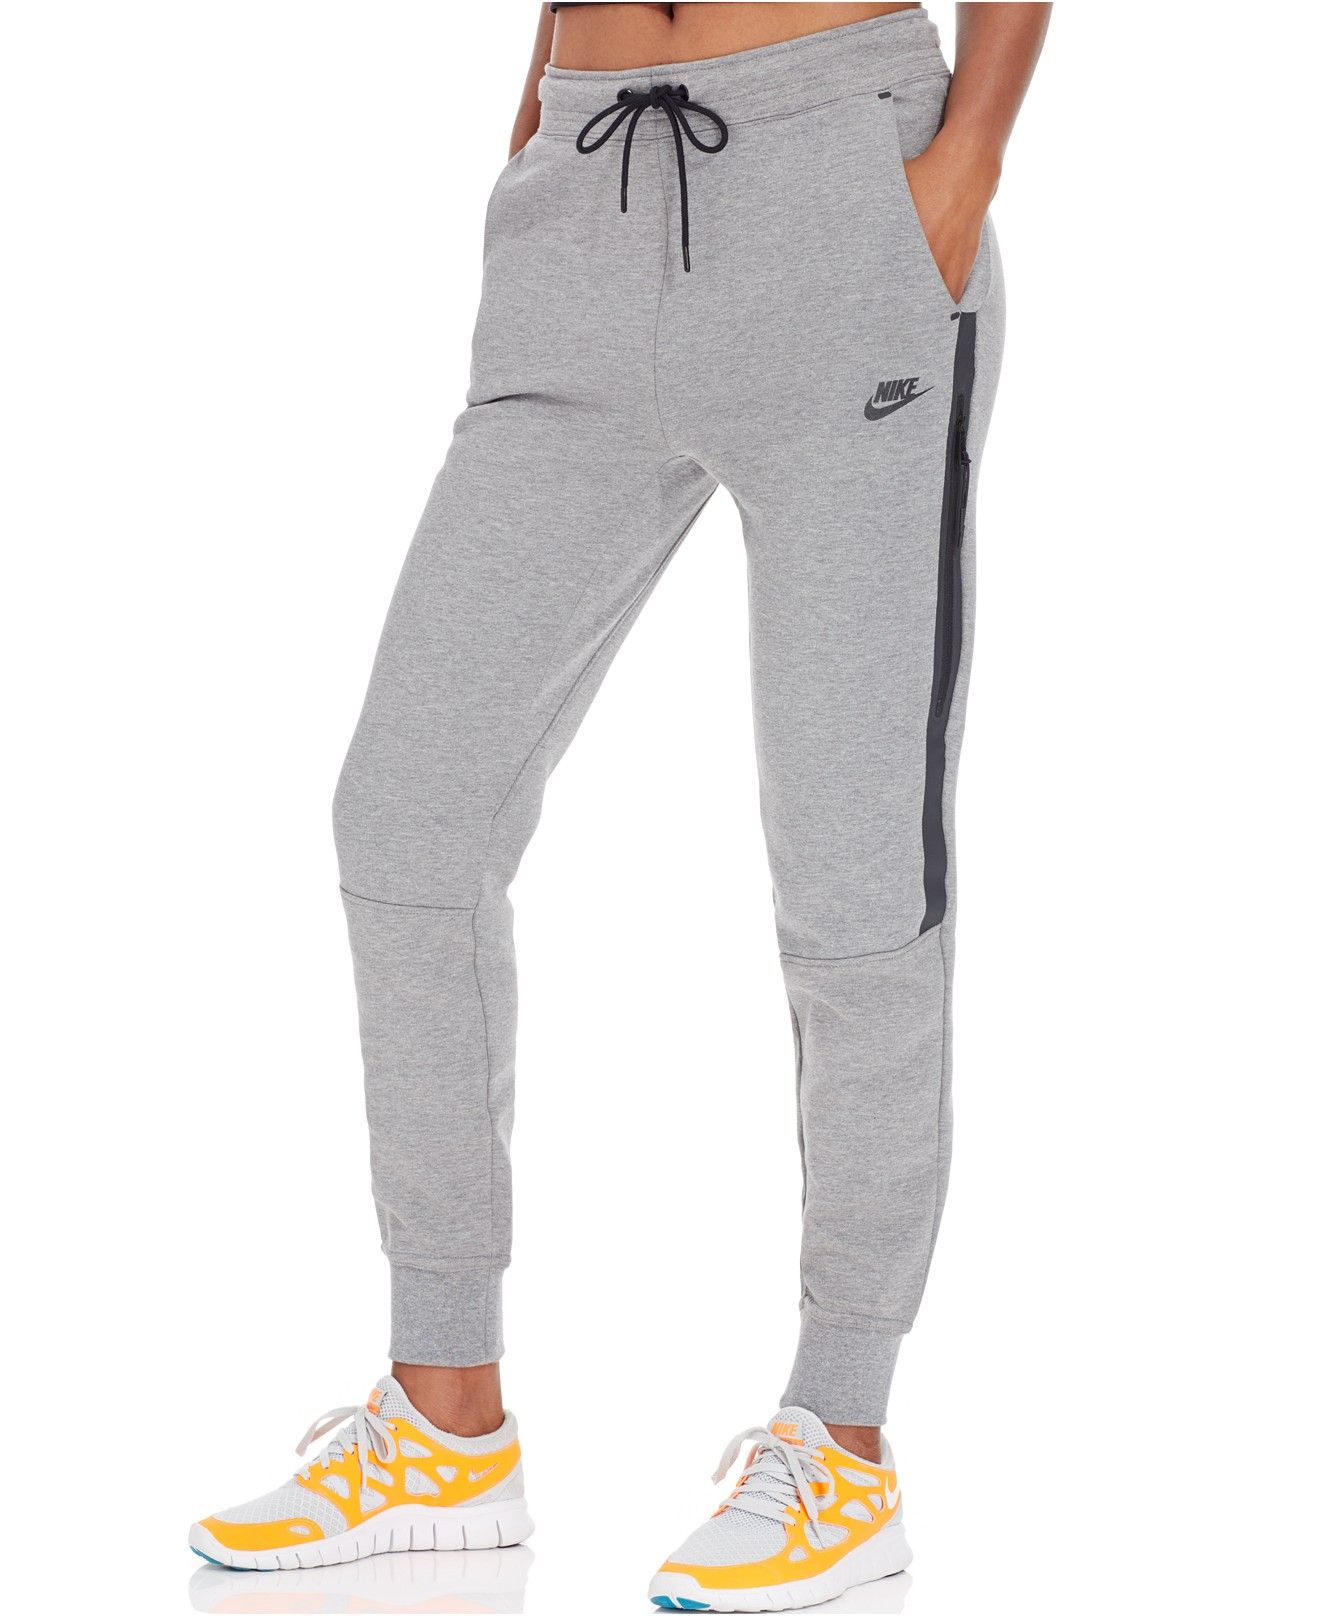 2c7616fe2df4e Nike Tech Fleece Sweatpants - Nike - Women - Macy's | barre & yoga ...